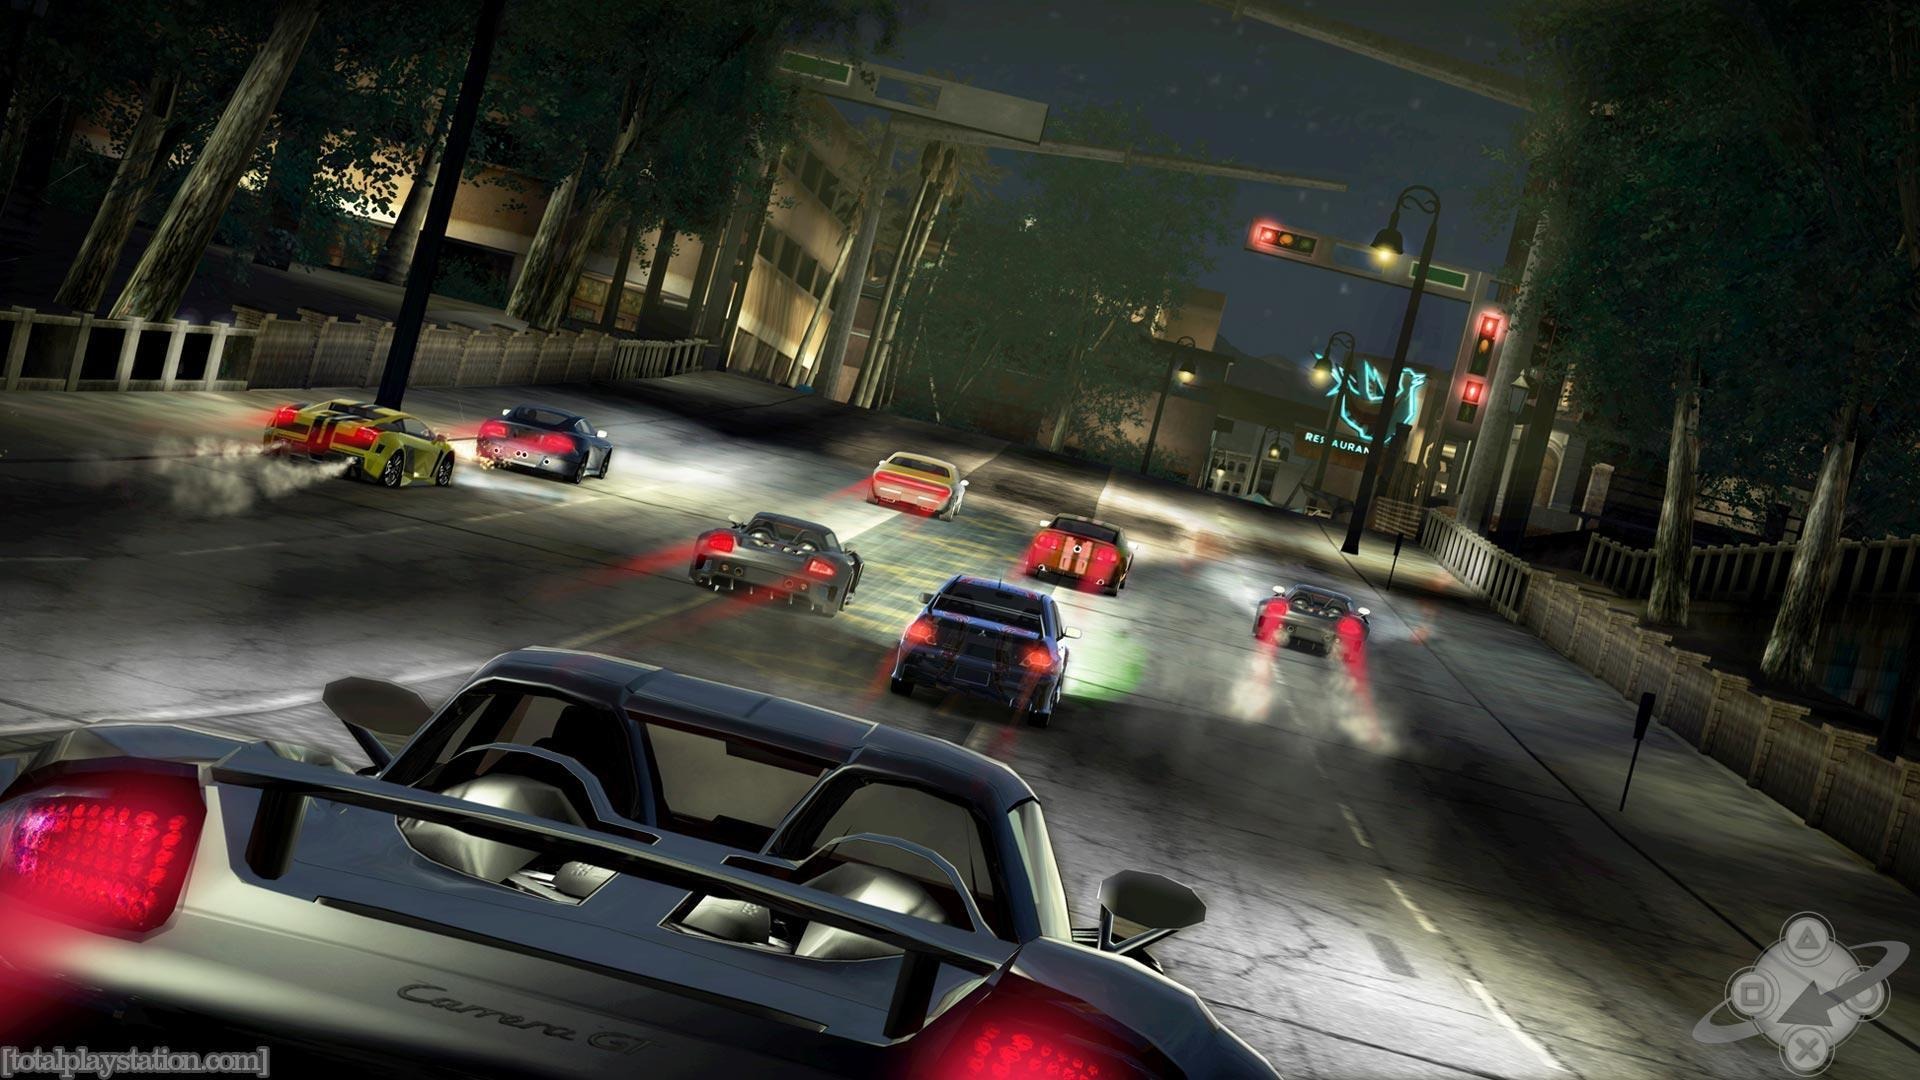 Hd Nfs Cars Wallpapers Nfs Carbon Wallpapers Wallpaper Cave